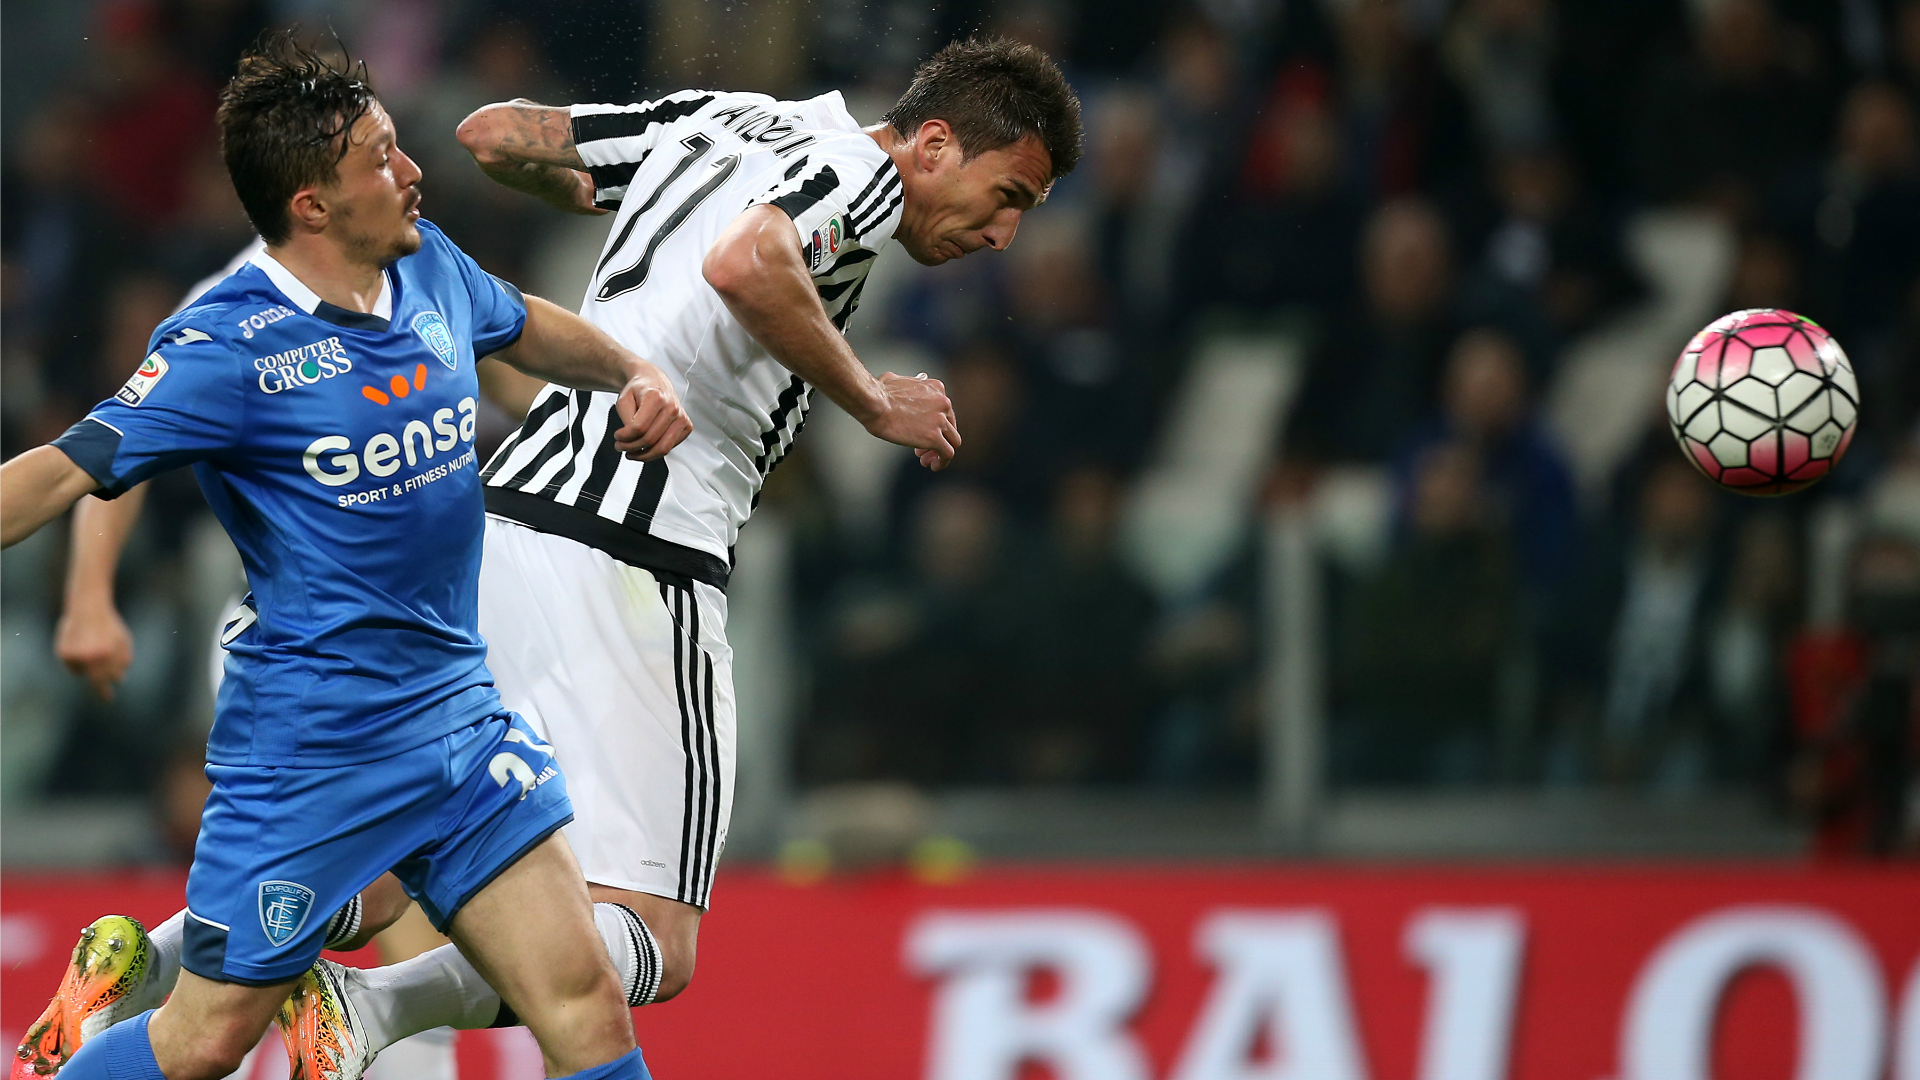 Video: Juventus vs Empoli